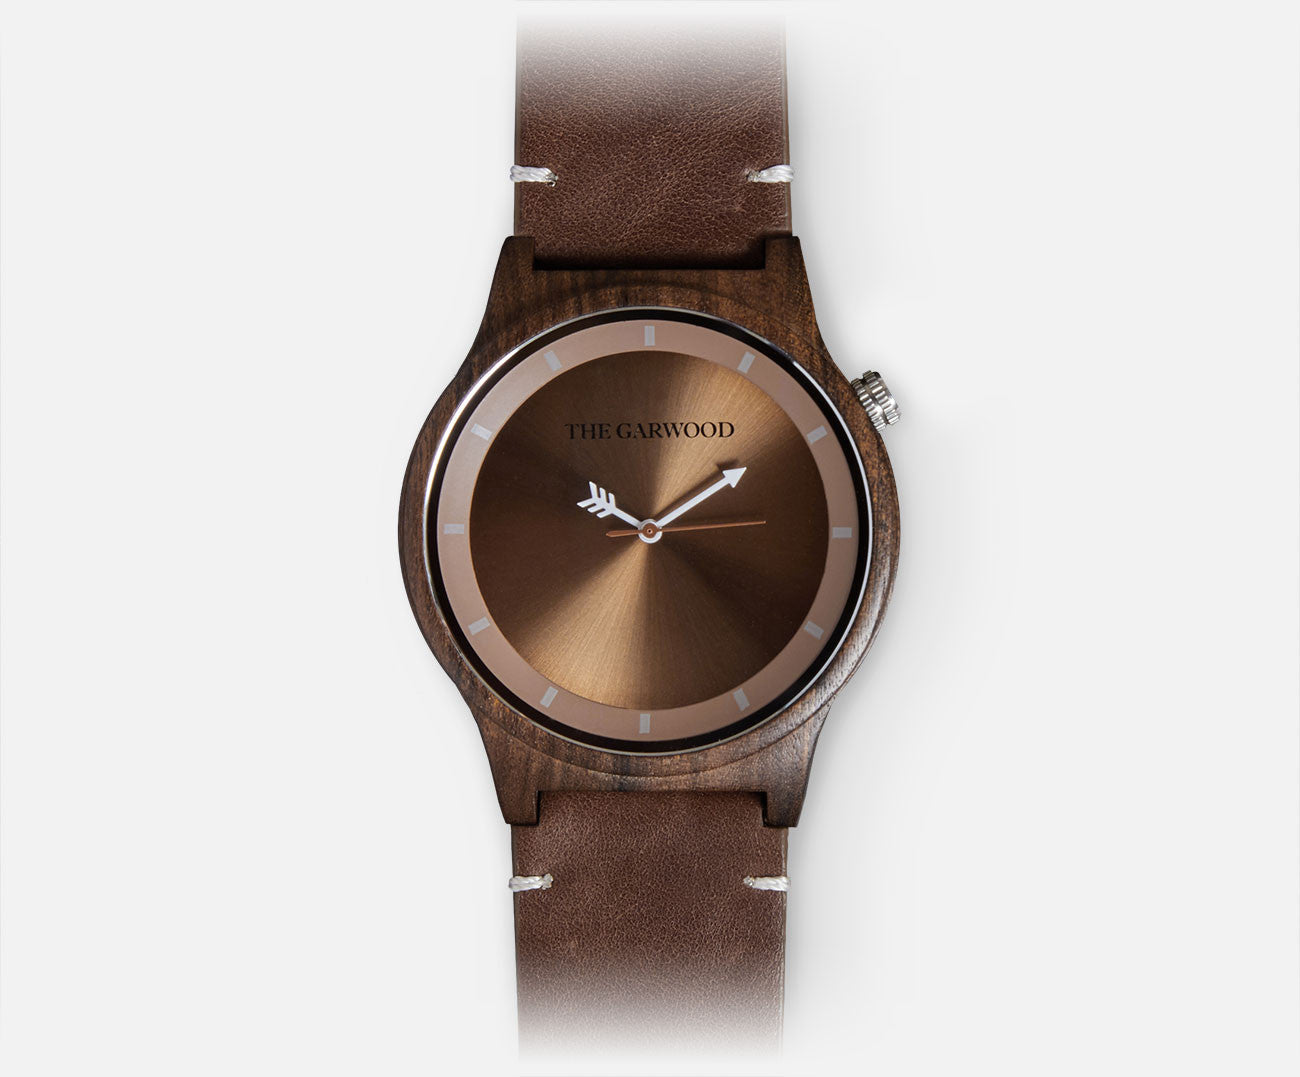 bamboo watches christmas natural watch wood womens mens products grain elegant reindeer vintage gorben trendywoodentimepieces sculpture designer wooden luxury